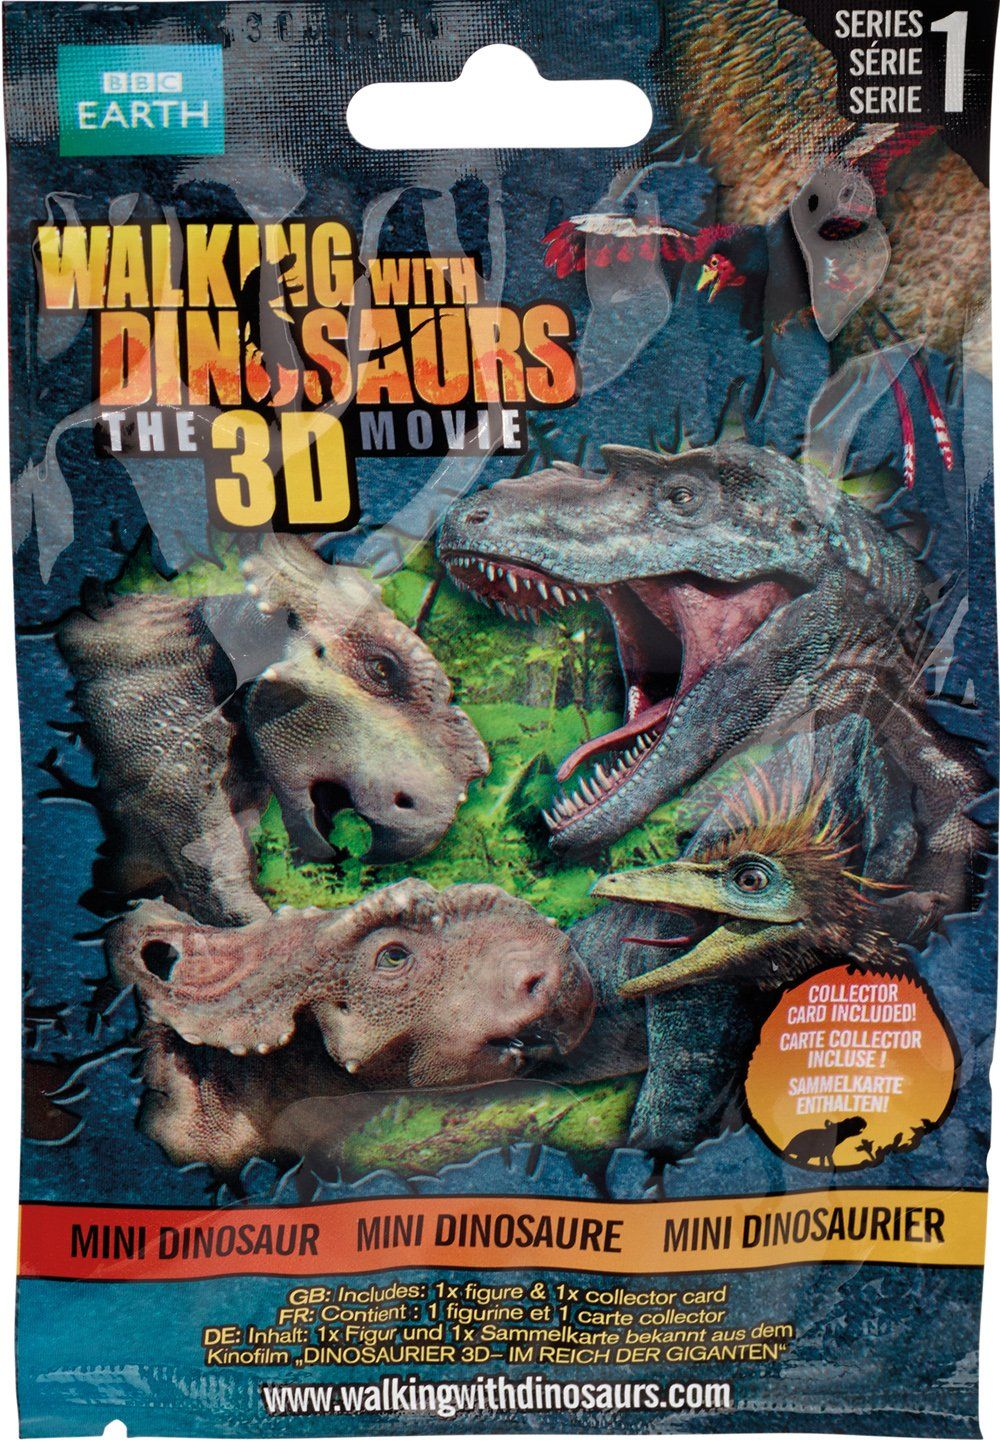 Walking with Dinosaurs - this is the movie, not the scary tv series!